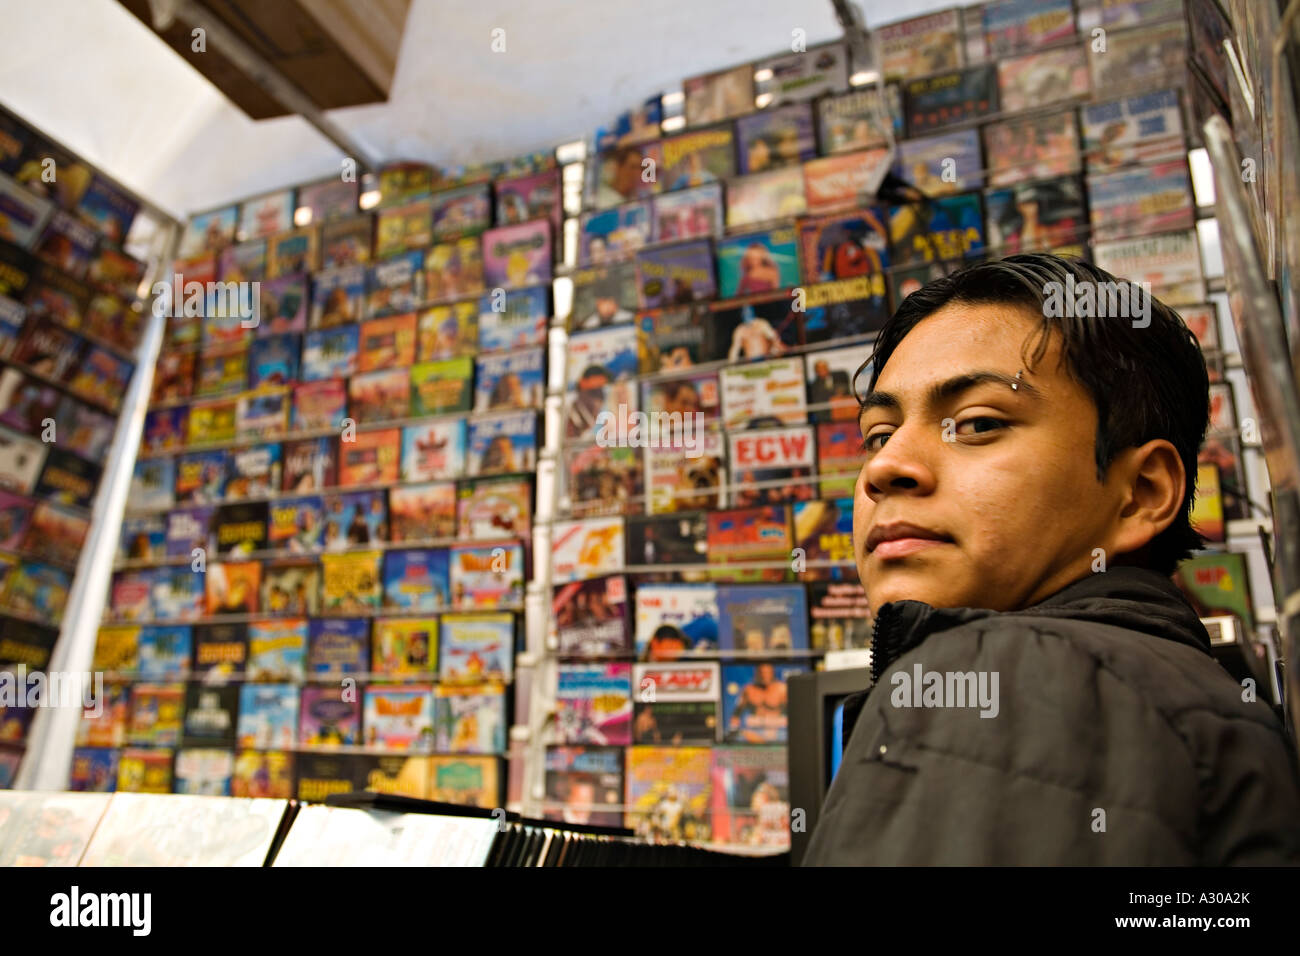 Mexico Guanajuato Young Adult Male Tend Booth Selling Dvds And Cds Pierced Eyebrow